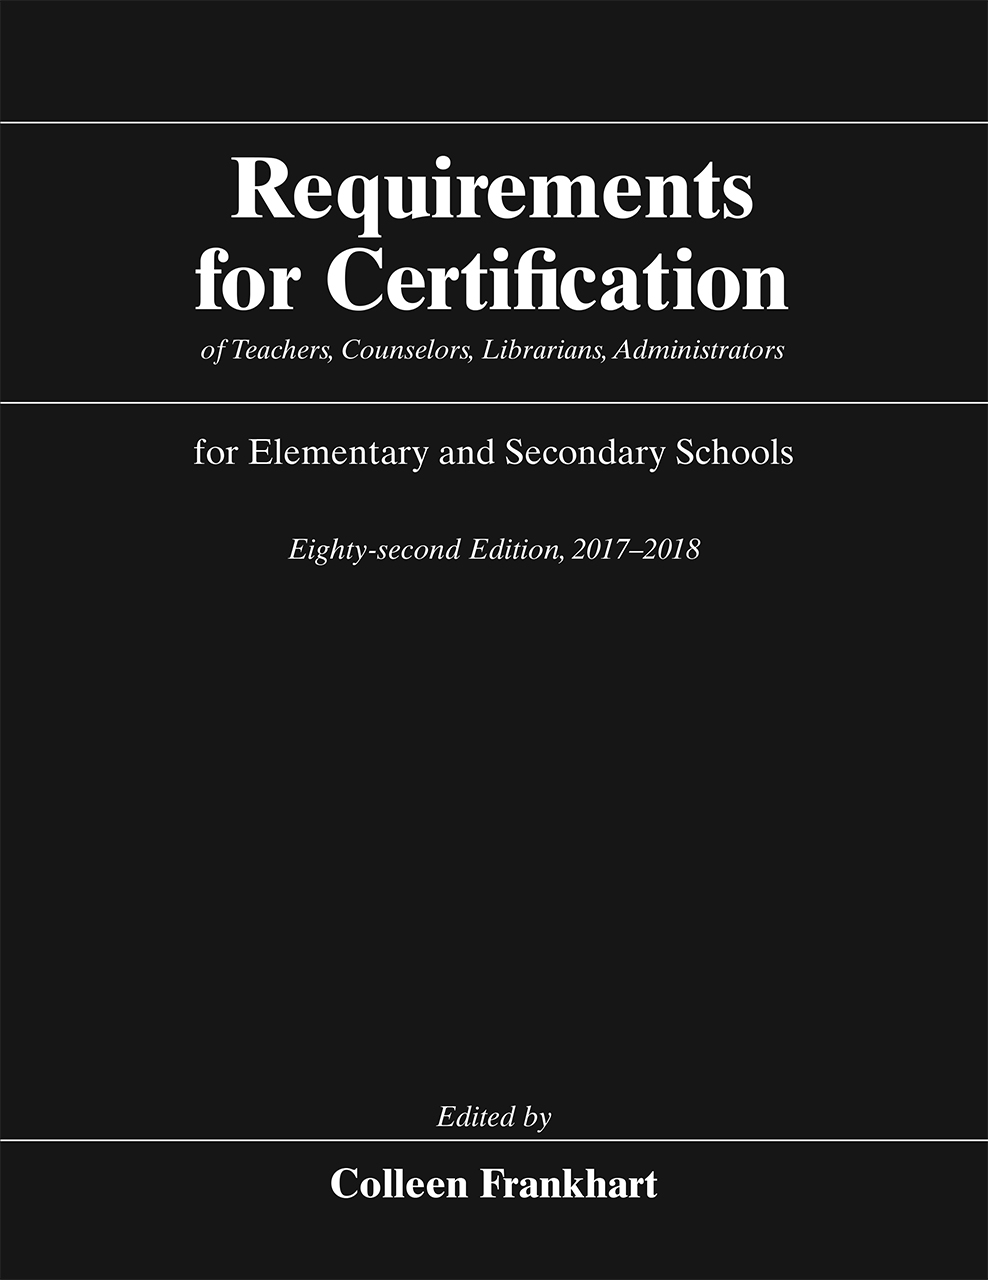 Requirements for Certification of Teachers, Counselors, Librarians, Administrators for Elementary and Secondary Schools, Eighty-second Edition, 2017-2018